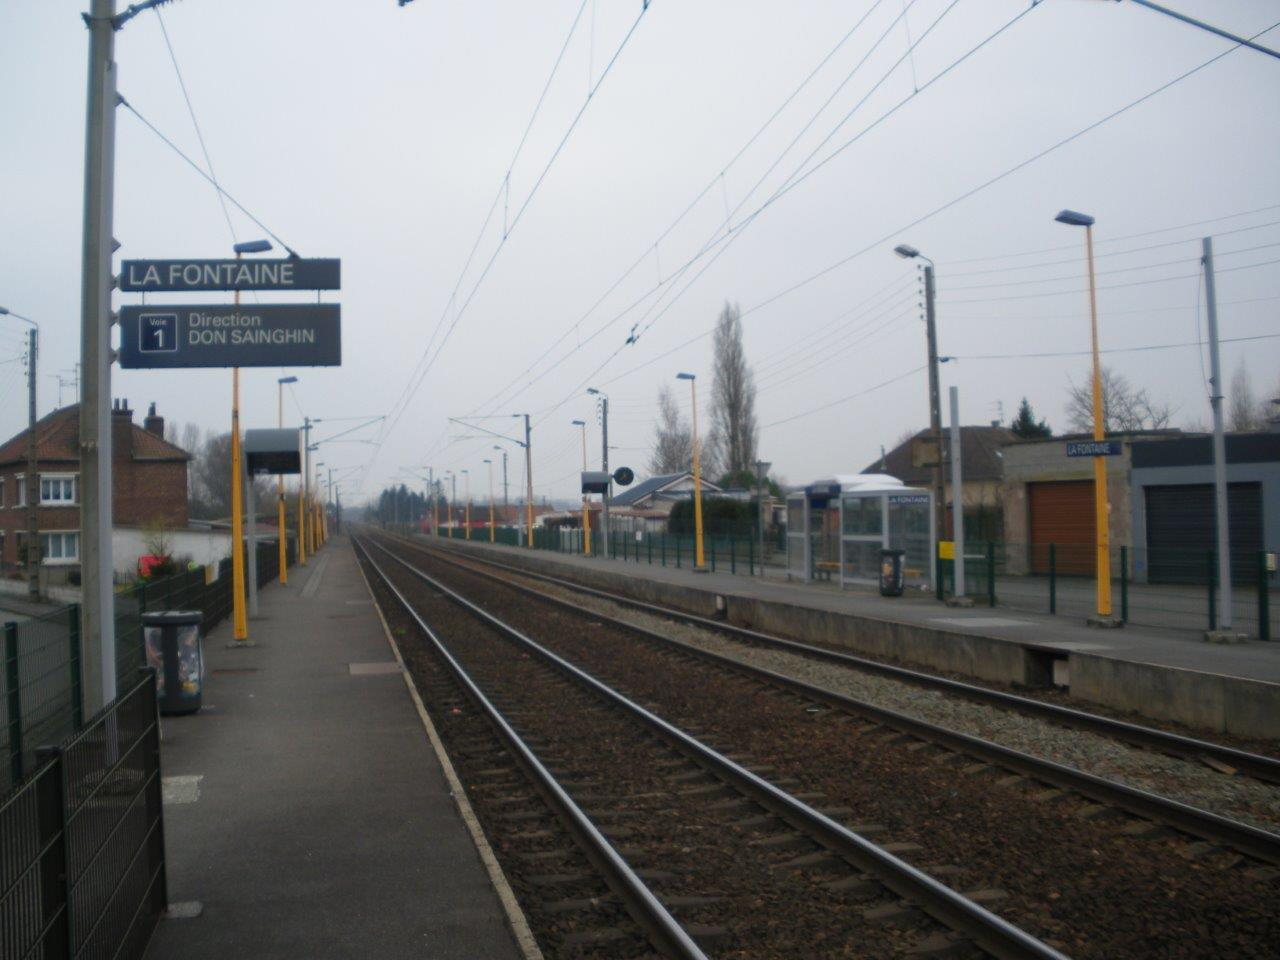 gare-de-la-fontaine-train-station